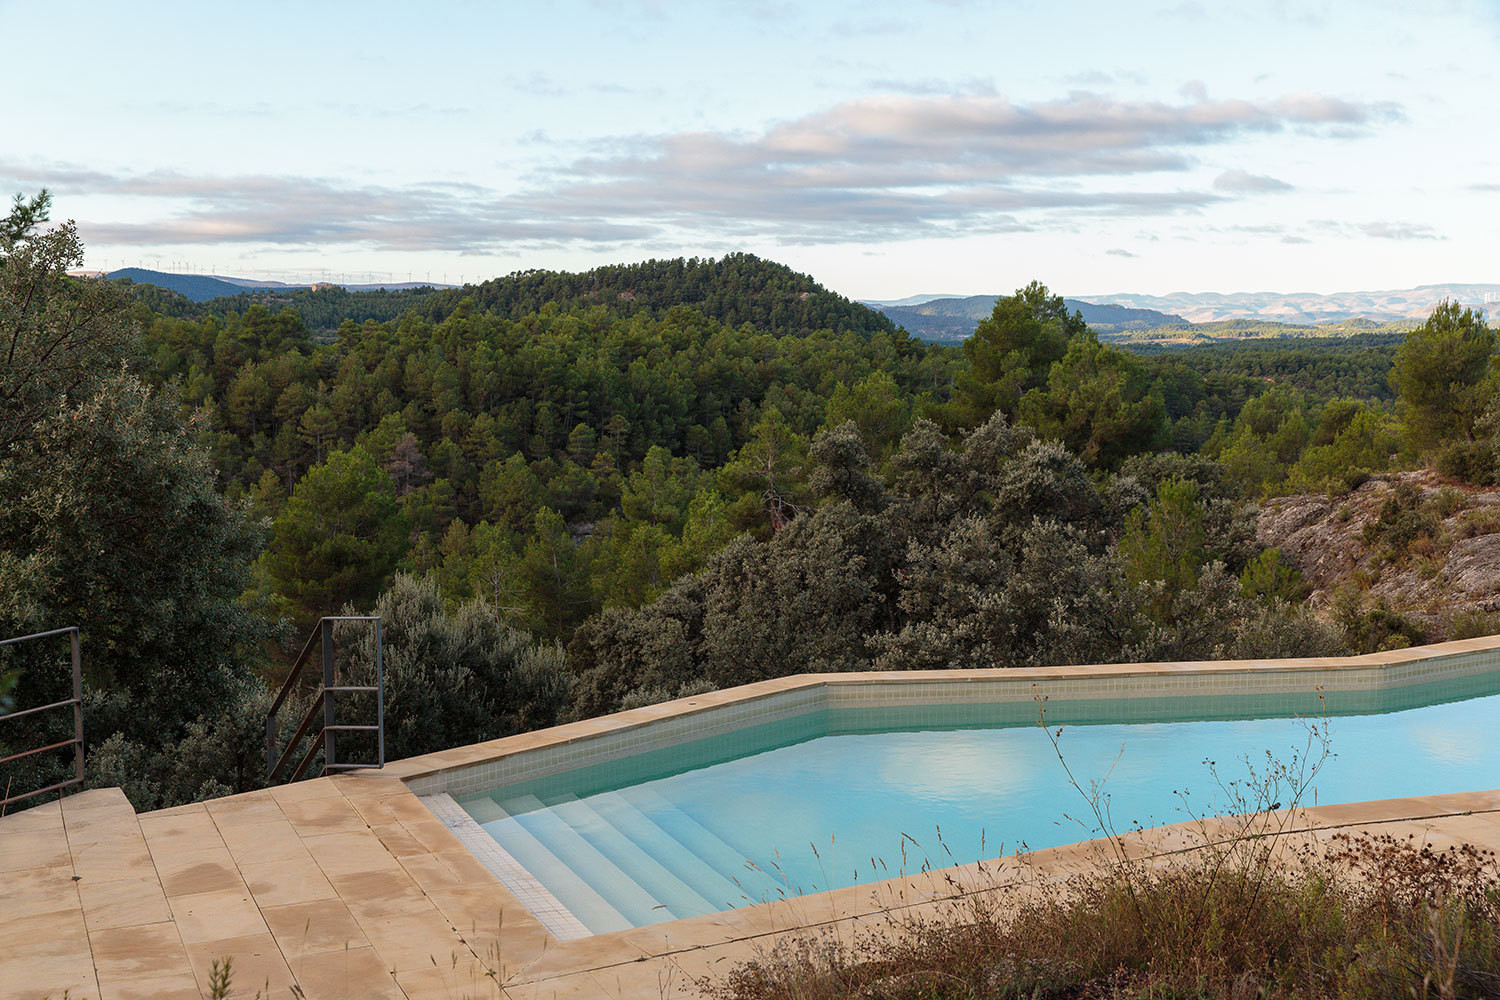 The hotel's pool, which overlooks ancient olive, pine, and almond trees.